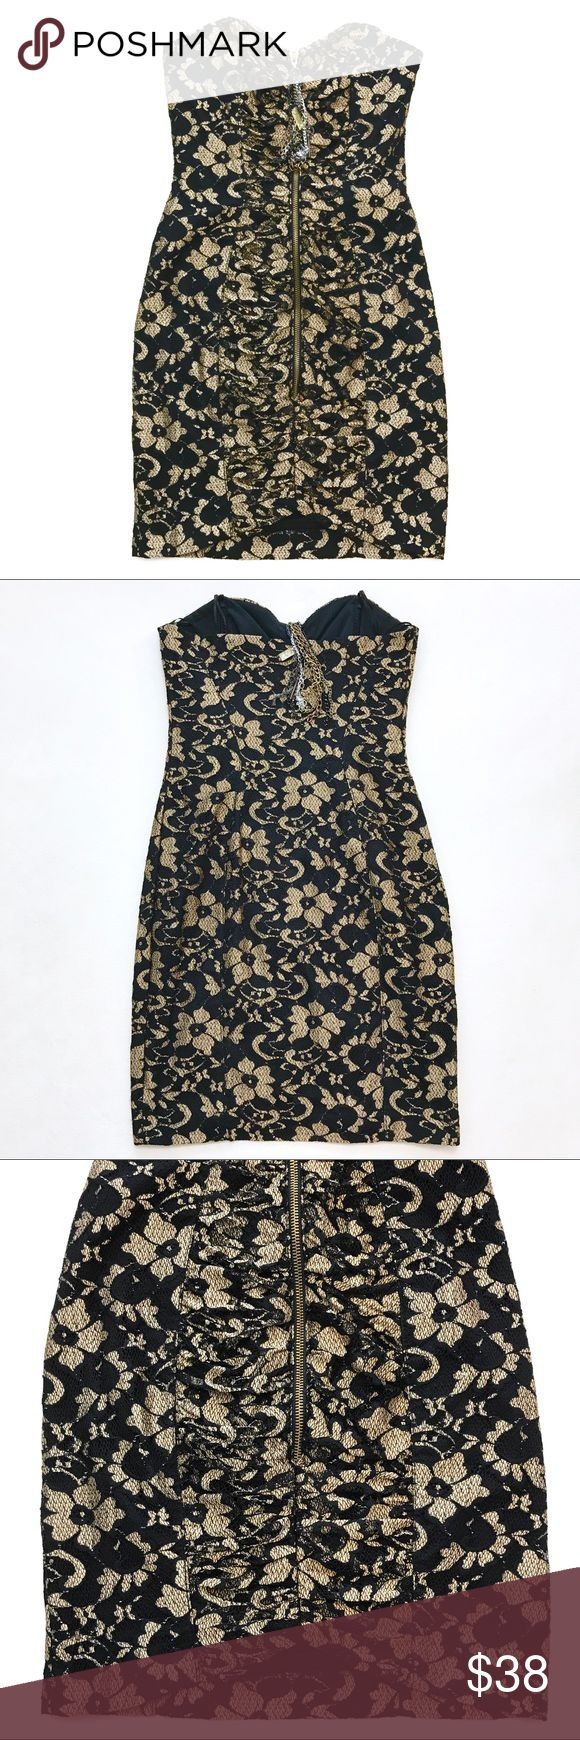 """River Island Lace Strapless Dress Worn Once. Still in very good condition. Zip Front. Black& gold lace. Lined. 🇬🇧 Brand UK size 6. US Size 2. Lay Flat Measurement; pit to pit-14"""". Waist-12.5"""". Length Approx-27"""". Has a boning in front & sides. No Trades. No Modeling. No low ball offers River Island Dresses Strapless"""